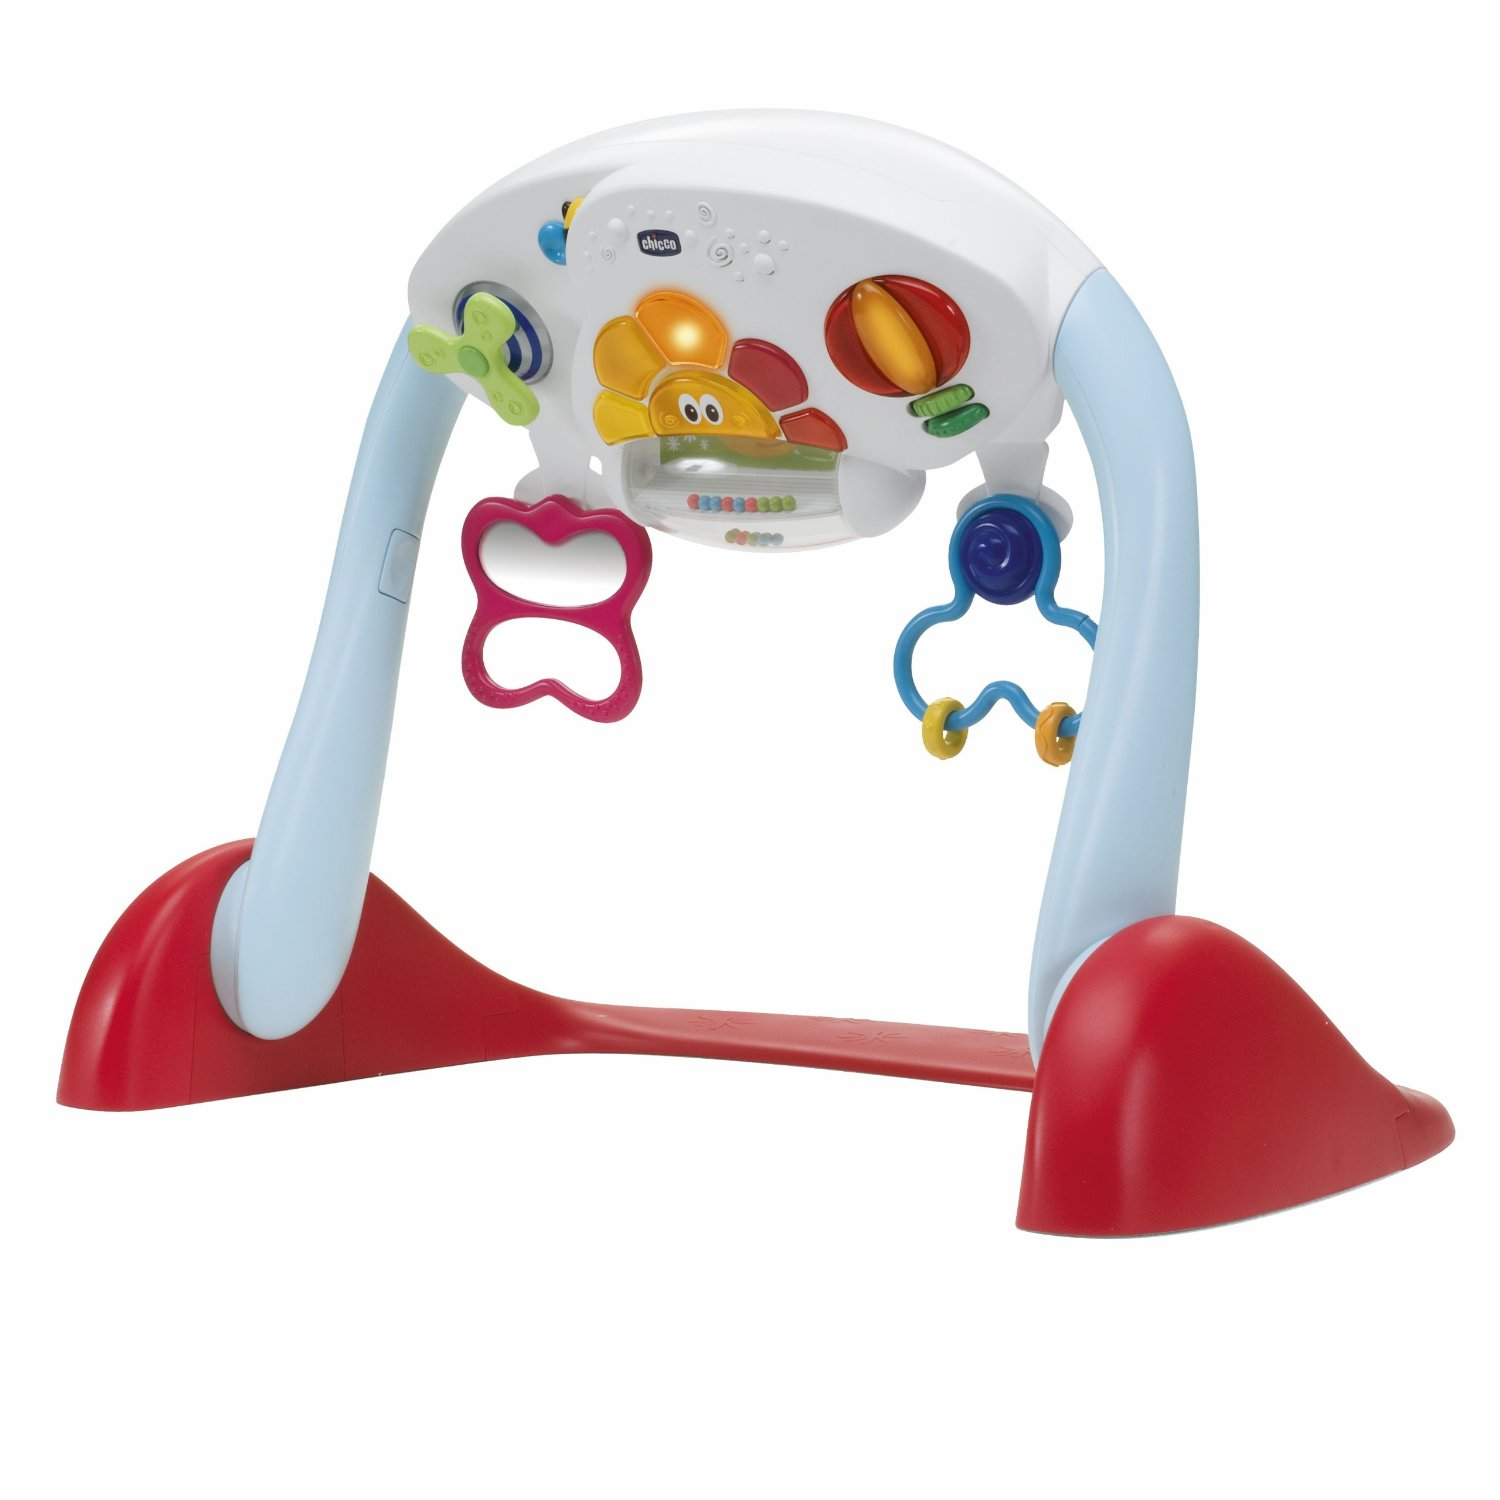 CHICCO I GYM INTERACTIVE BABY GYM FOR 3 MONTHS 2 POSITIONS OF